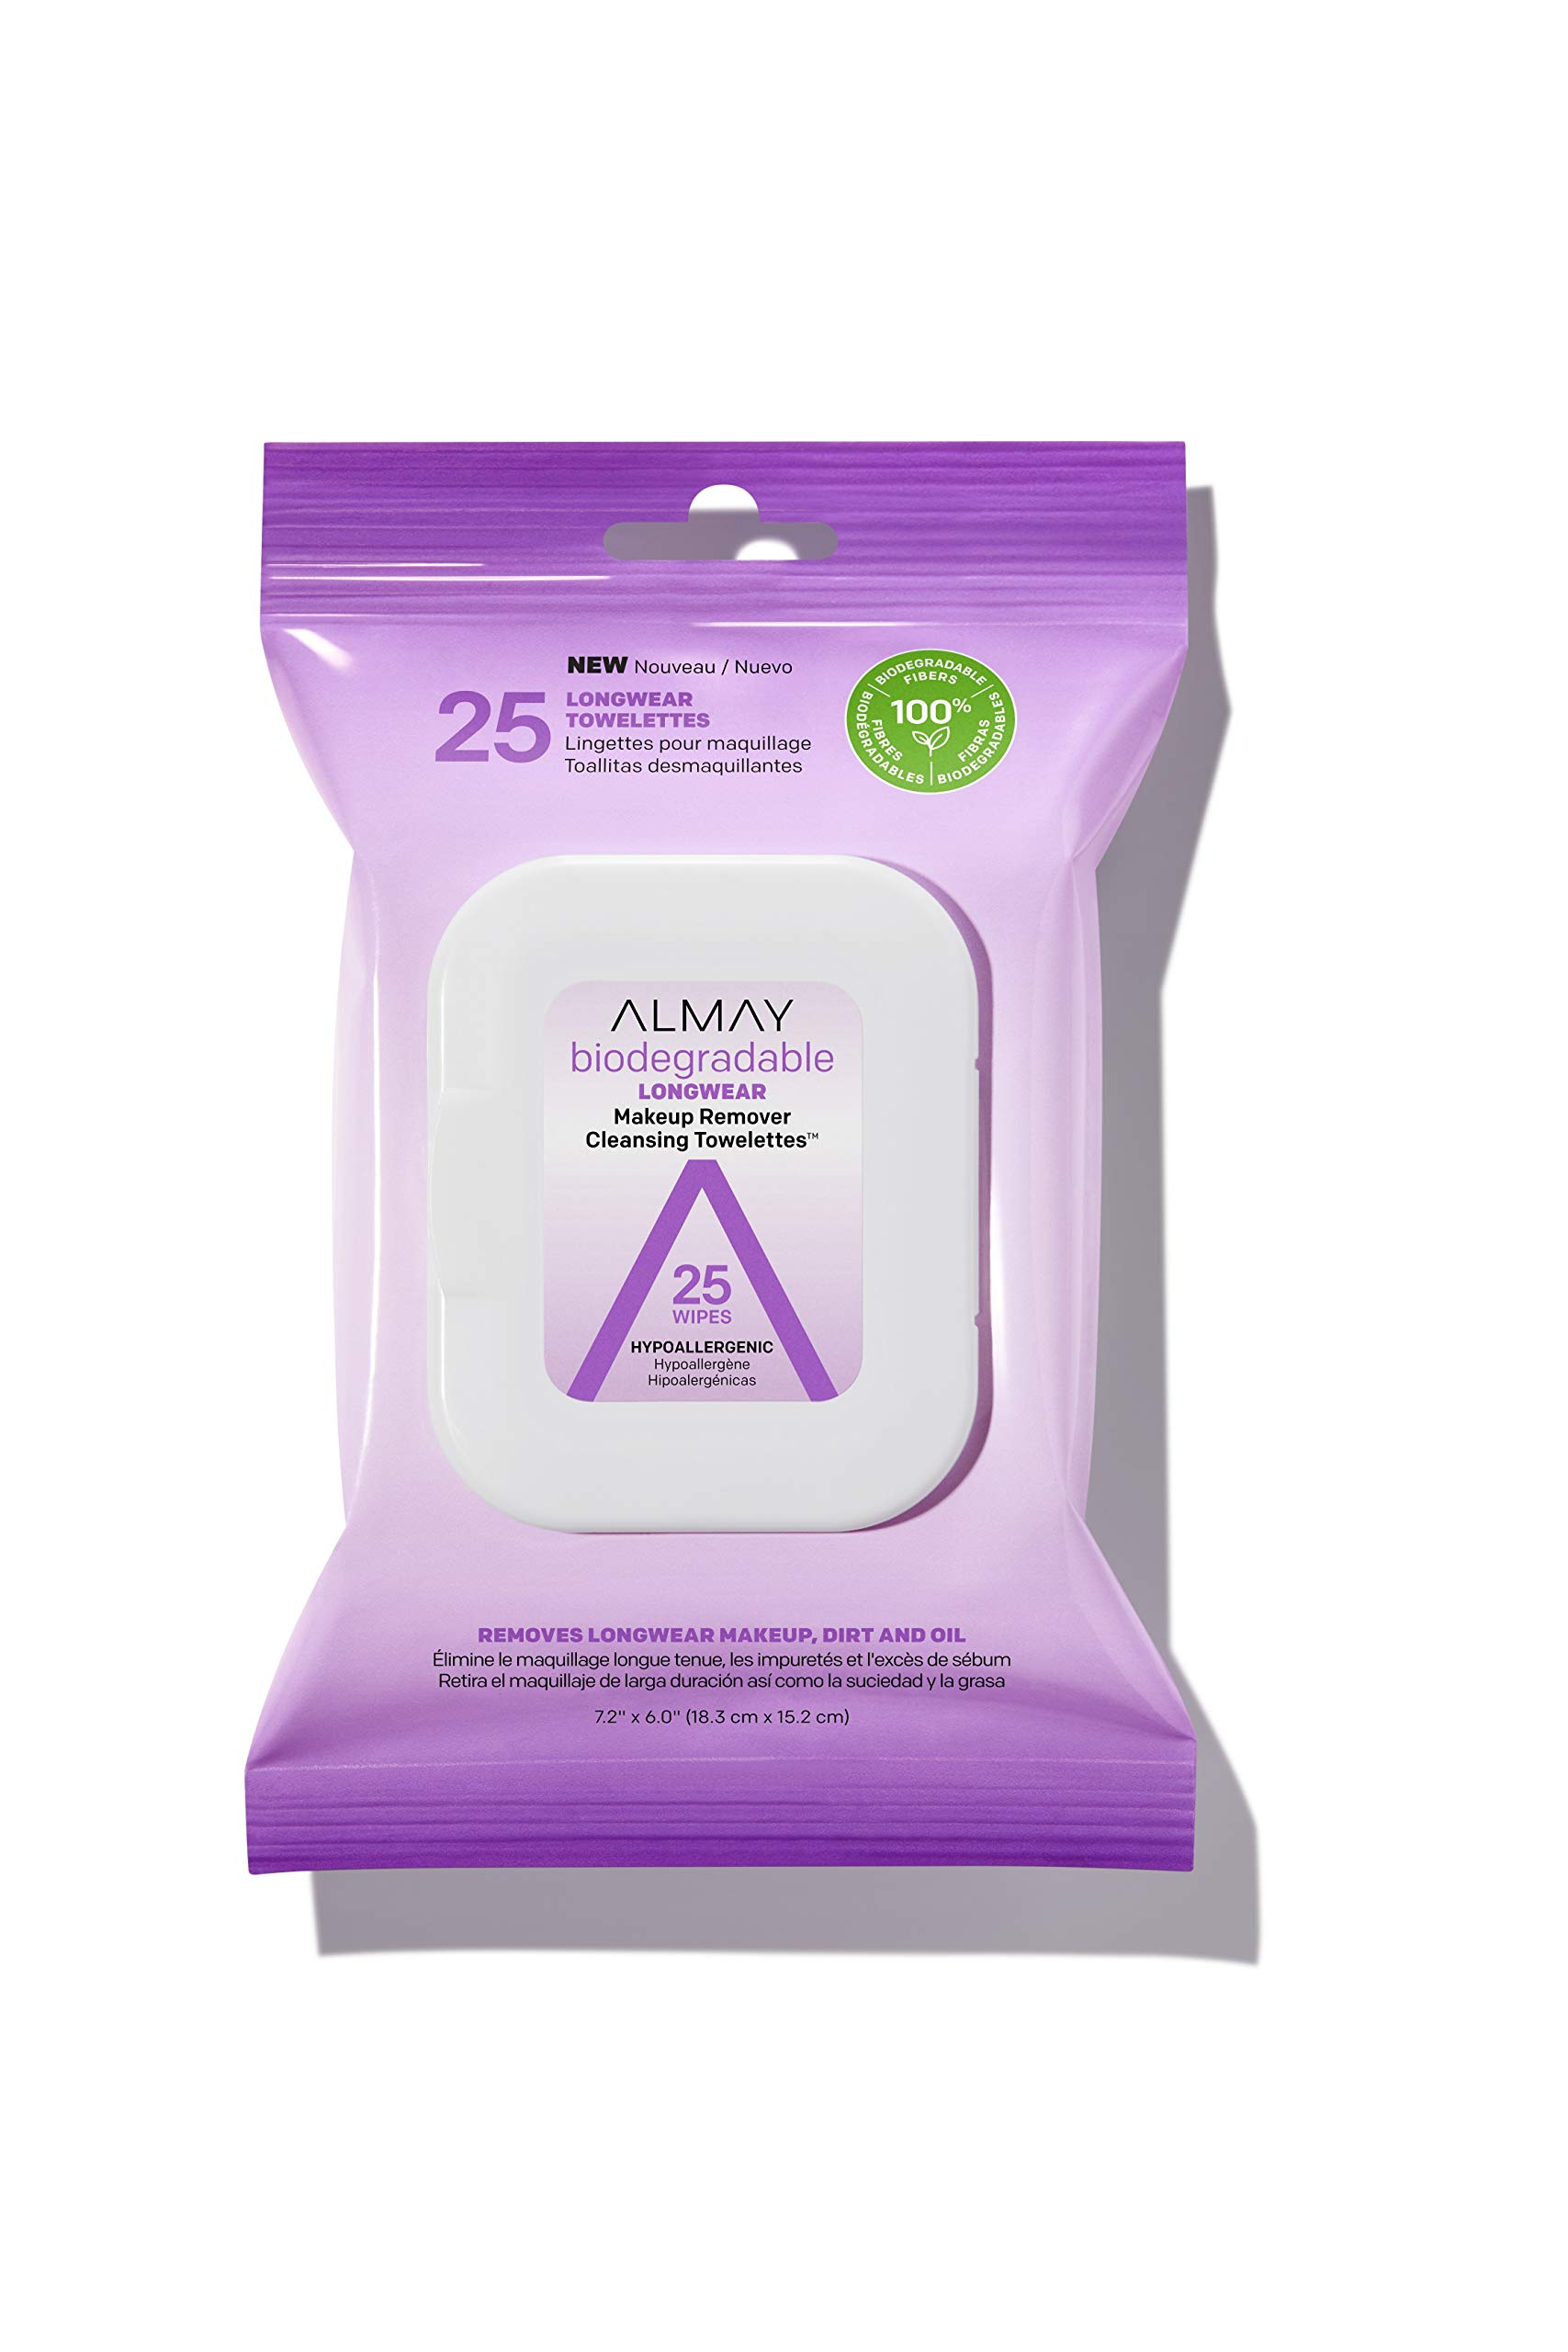 Almay Biodegradable Longwear Makeup Remover Cleansing Towelettes, Hypoallergenic, Cruelty Free, Fragrance free, Dermatologist Tested, 25 Makeup Remover Wipes